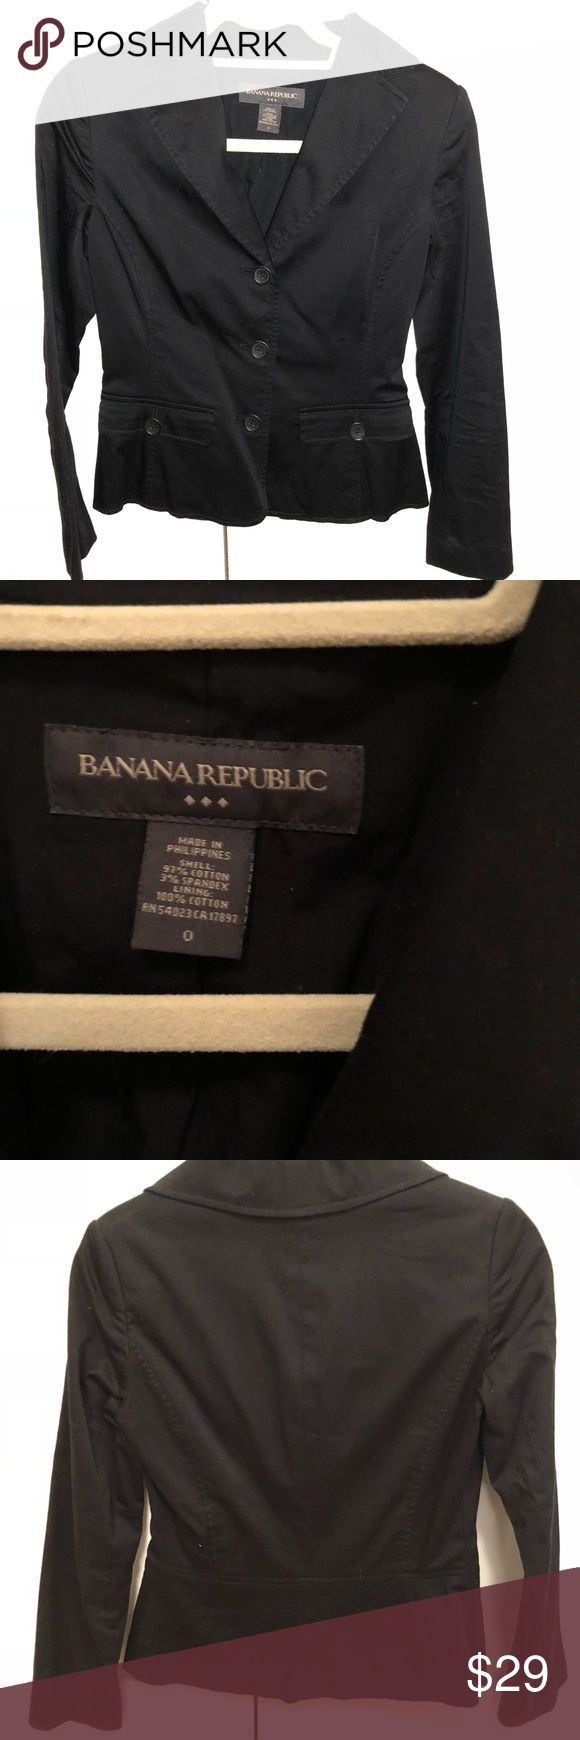 Banana Republic black blazer BANANA REPUBLIC - Soft versatile blazer perfect with a pair of jeans or dressed up for the office.  - 97% cotton, 3% spandex Banana Republic Jackets & Coats Blazers